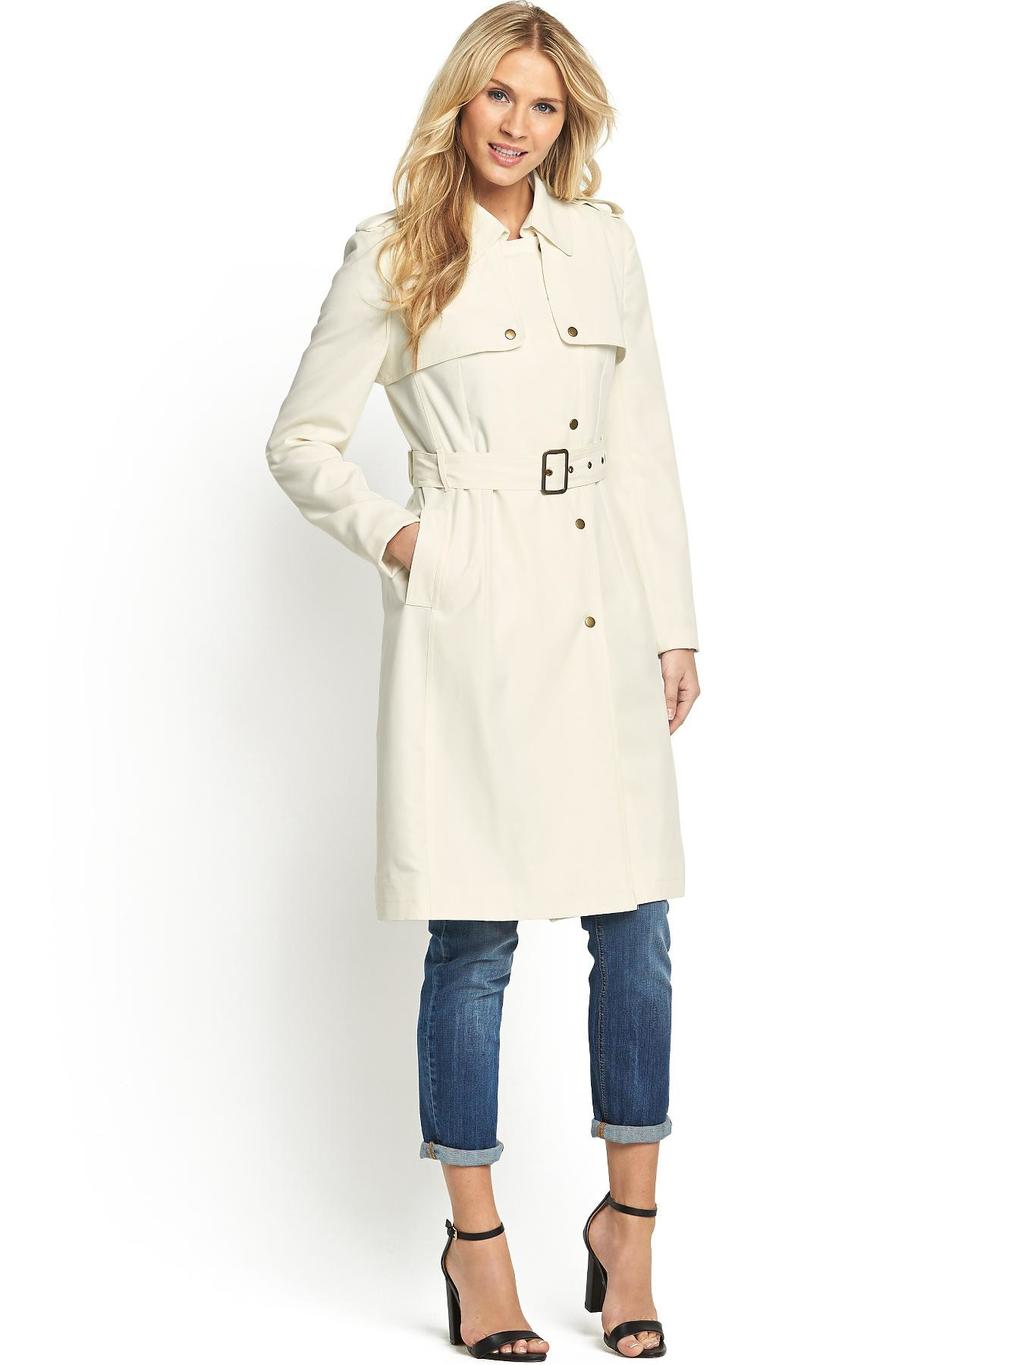 Luxury Belted Trench, Stone - pattern: plain; style: trench coat; length: on the knee; predominant colour: ivory/cream; occasions: casual, work, creative work; fit: tailored/fitted; fibres: cotton - stretch; collar: shirt collar/peter pan/zip with opening; waist detail: belted waist/tie at waist/drawstring; sleeve length: long sleeve; sleeve style: standard; collar break: high; pattern type: fabric; texture group: woven light midweight; season: s/s 2014